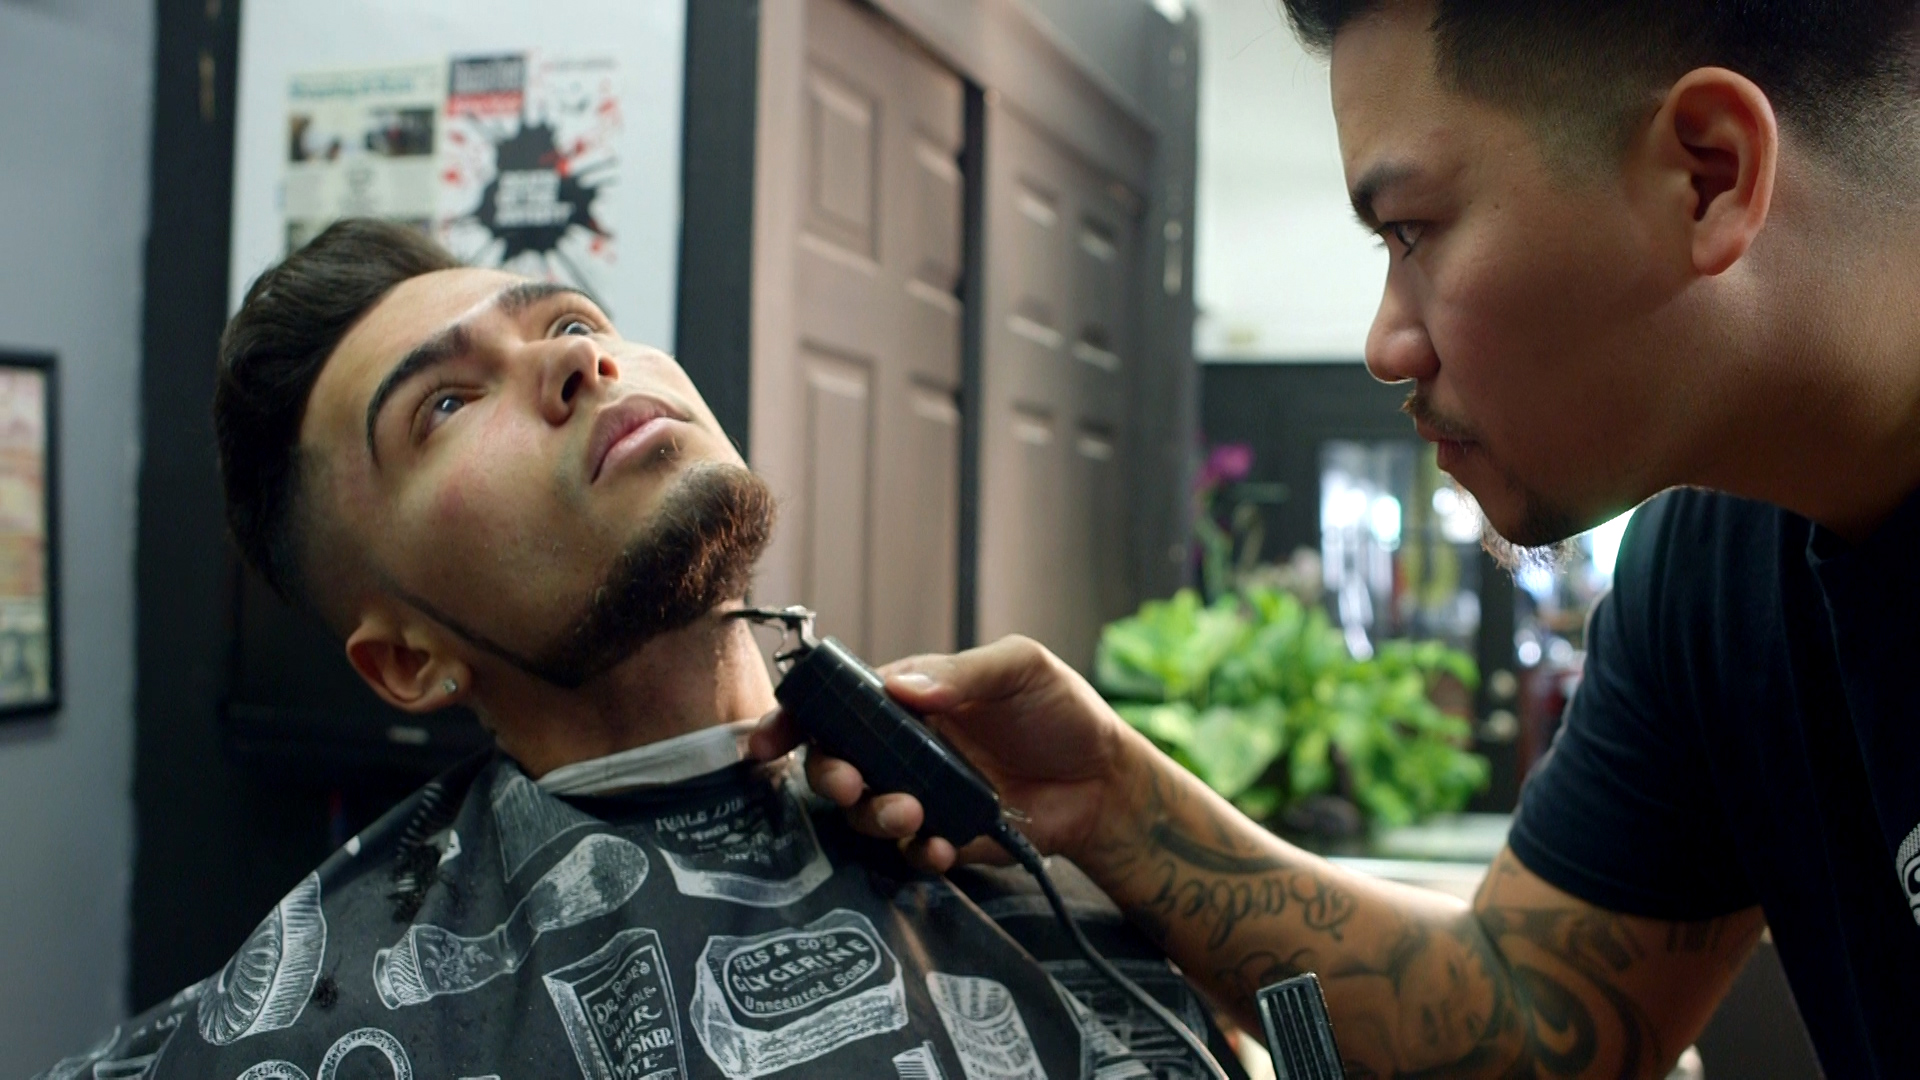 Queens Barber Filthy Rich On His Rise To Barbering Fame